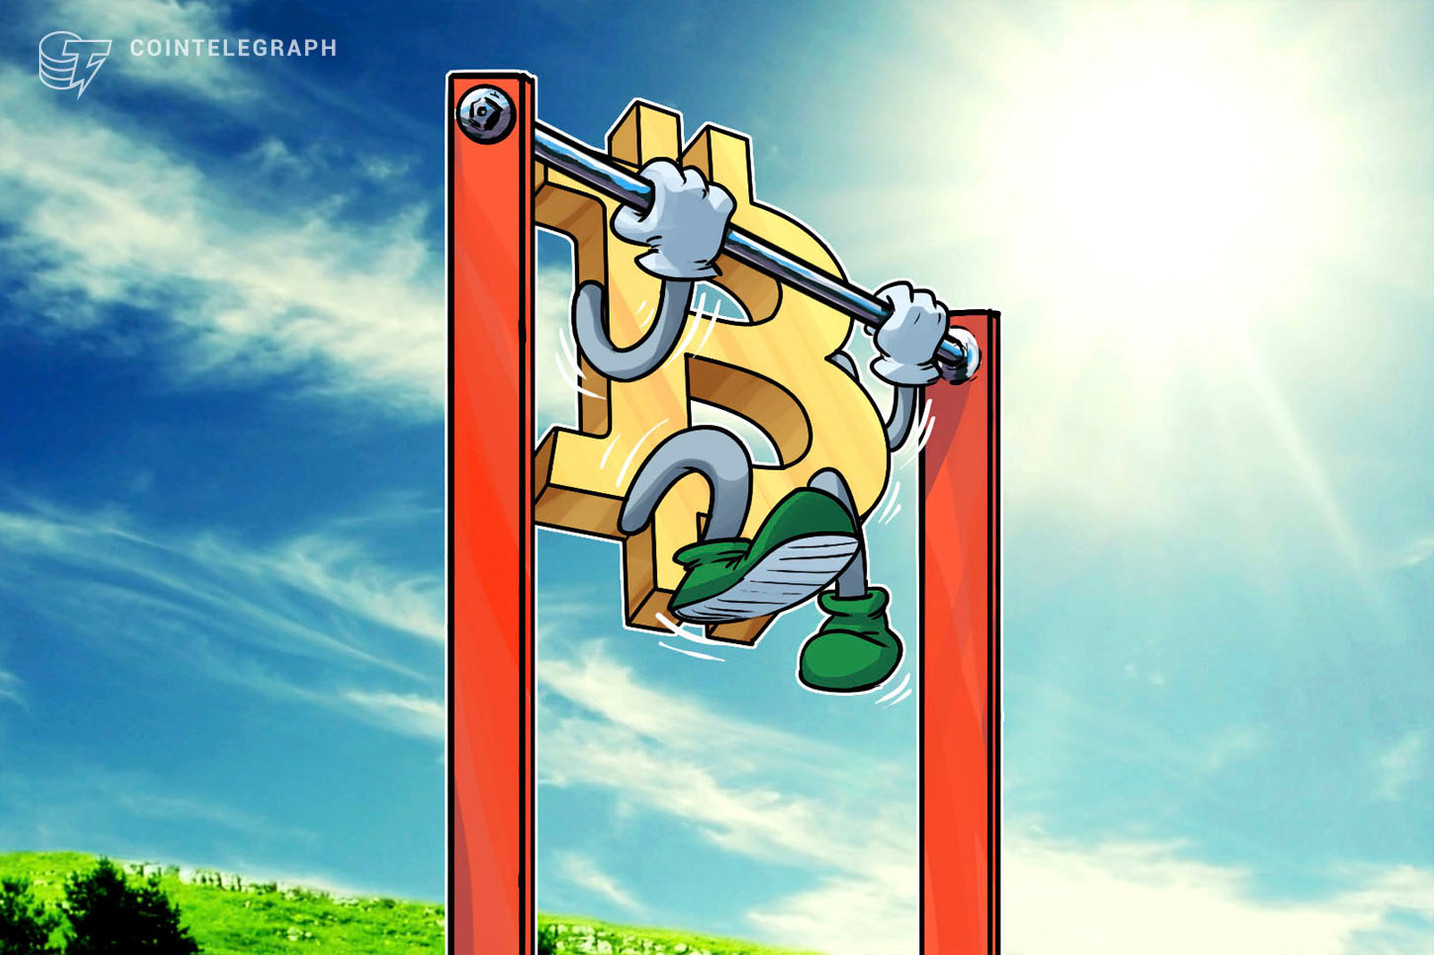 Tone Vays: Bitcoin Must Hold $9K for 2-3 Days to Secure Bull Market